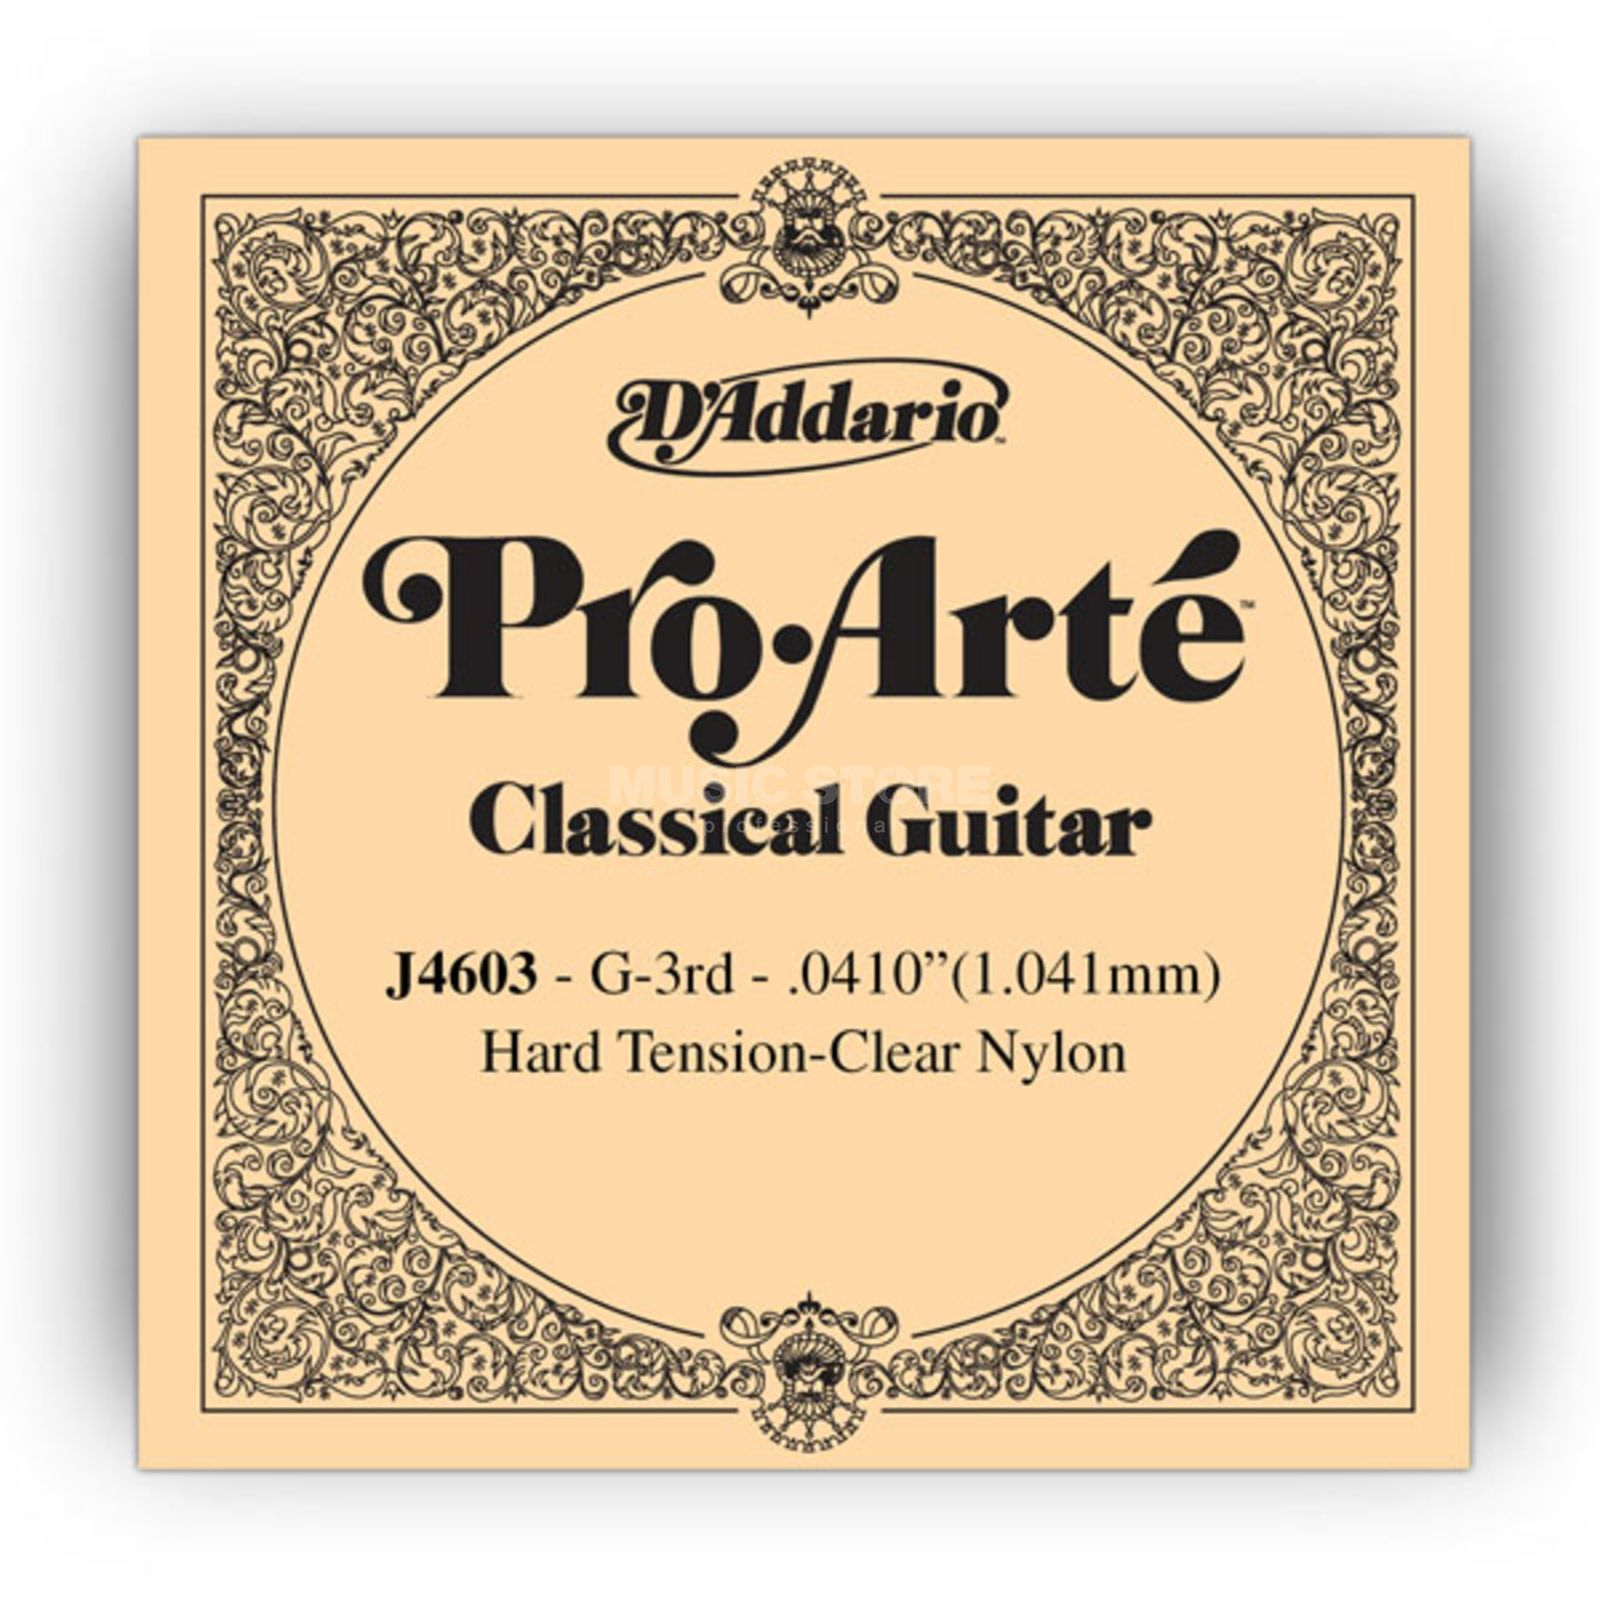 D'Addario J4603 G3 Pro Arte Single String Hard Tension 0410/J46/J71 Produktbillede